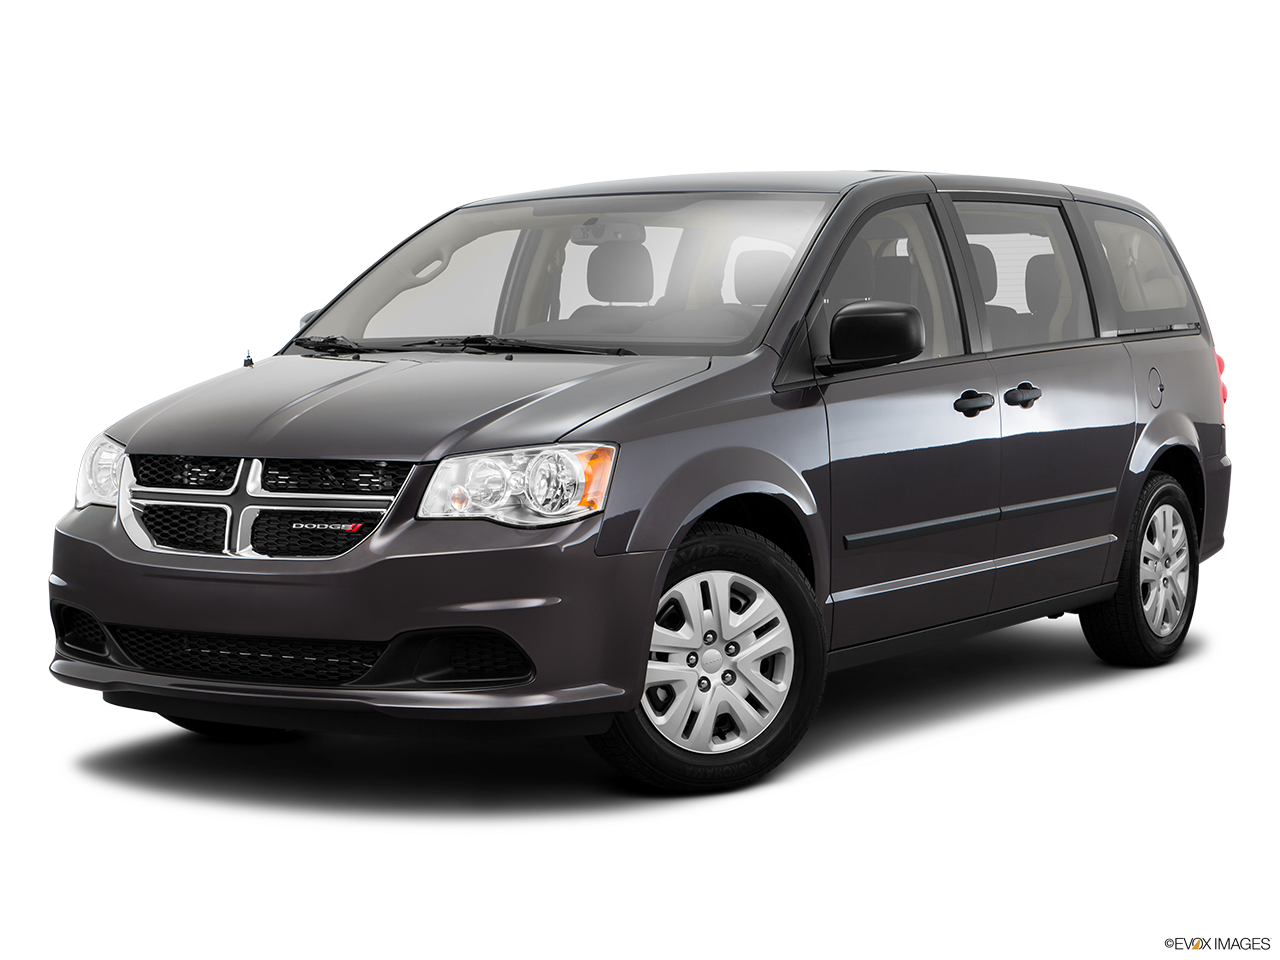 Test Drive A 2016 Dodge Grand Caravan  at Carl Burger Dodge Chrysler Jeep Ram World in La Mesa